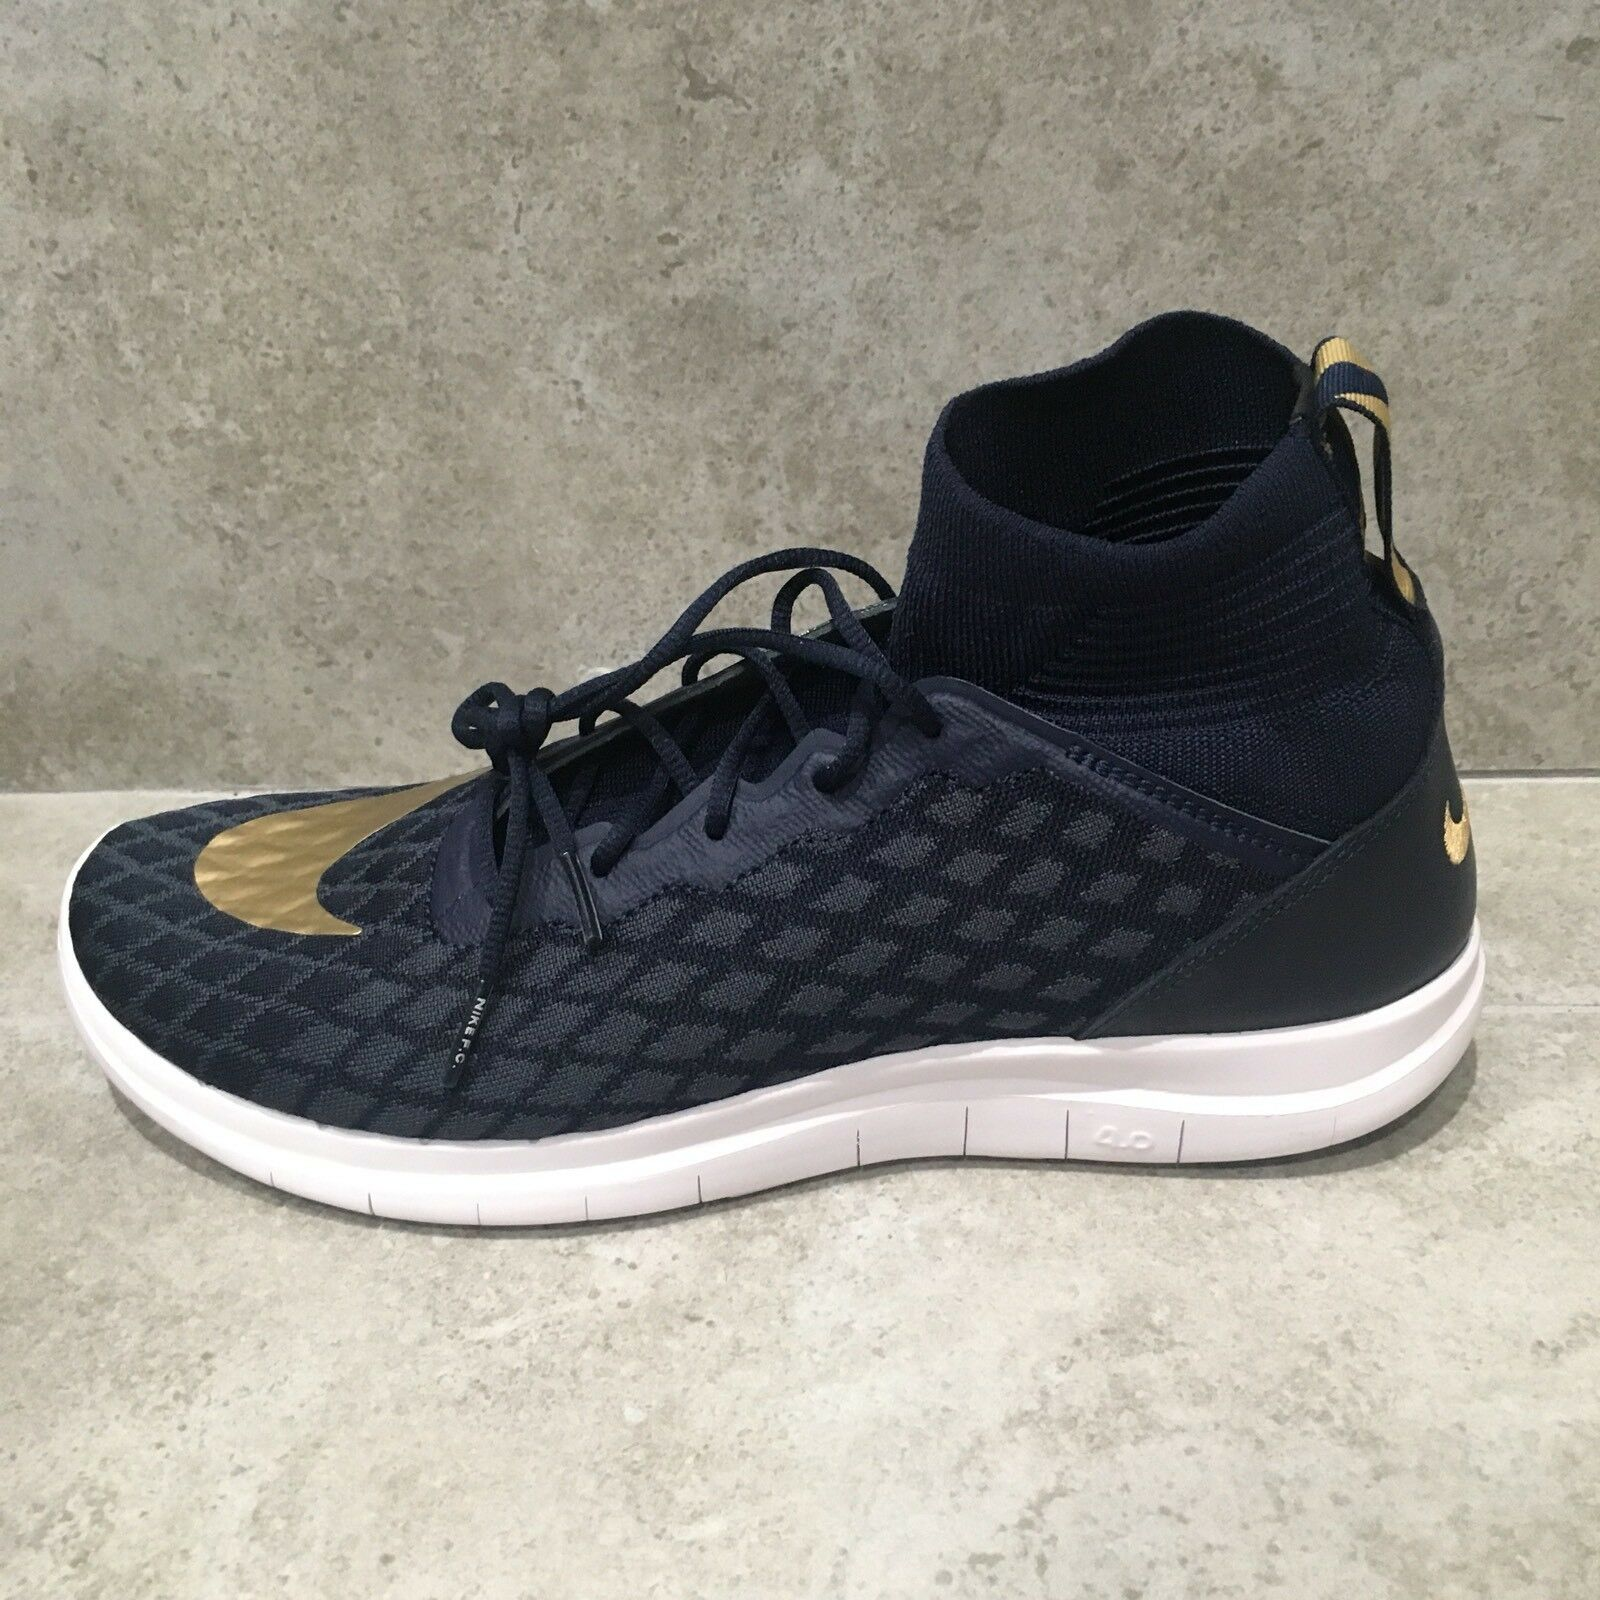 Nike Free Hypervenom 3 FC Flyknit Shoes Navy/Metallic Gold 898029-400 SZ 9.5